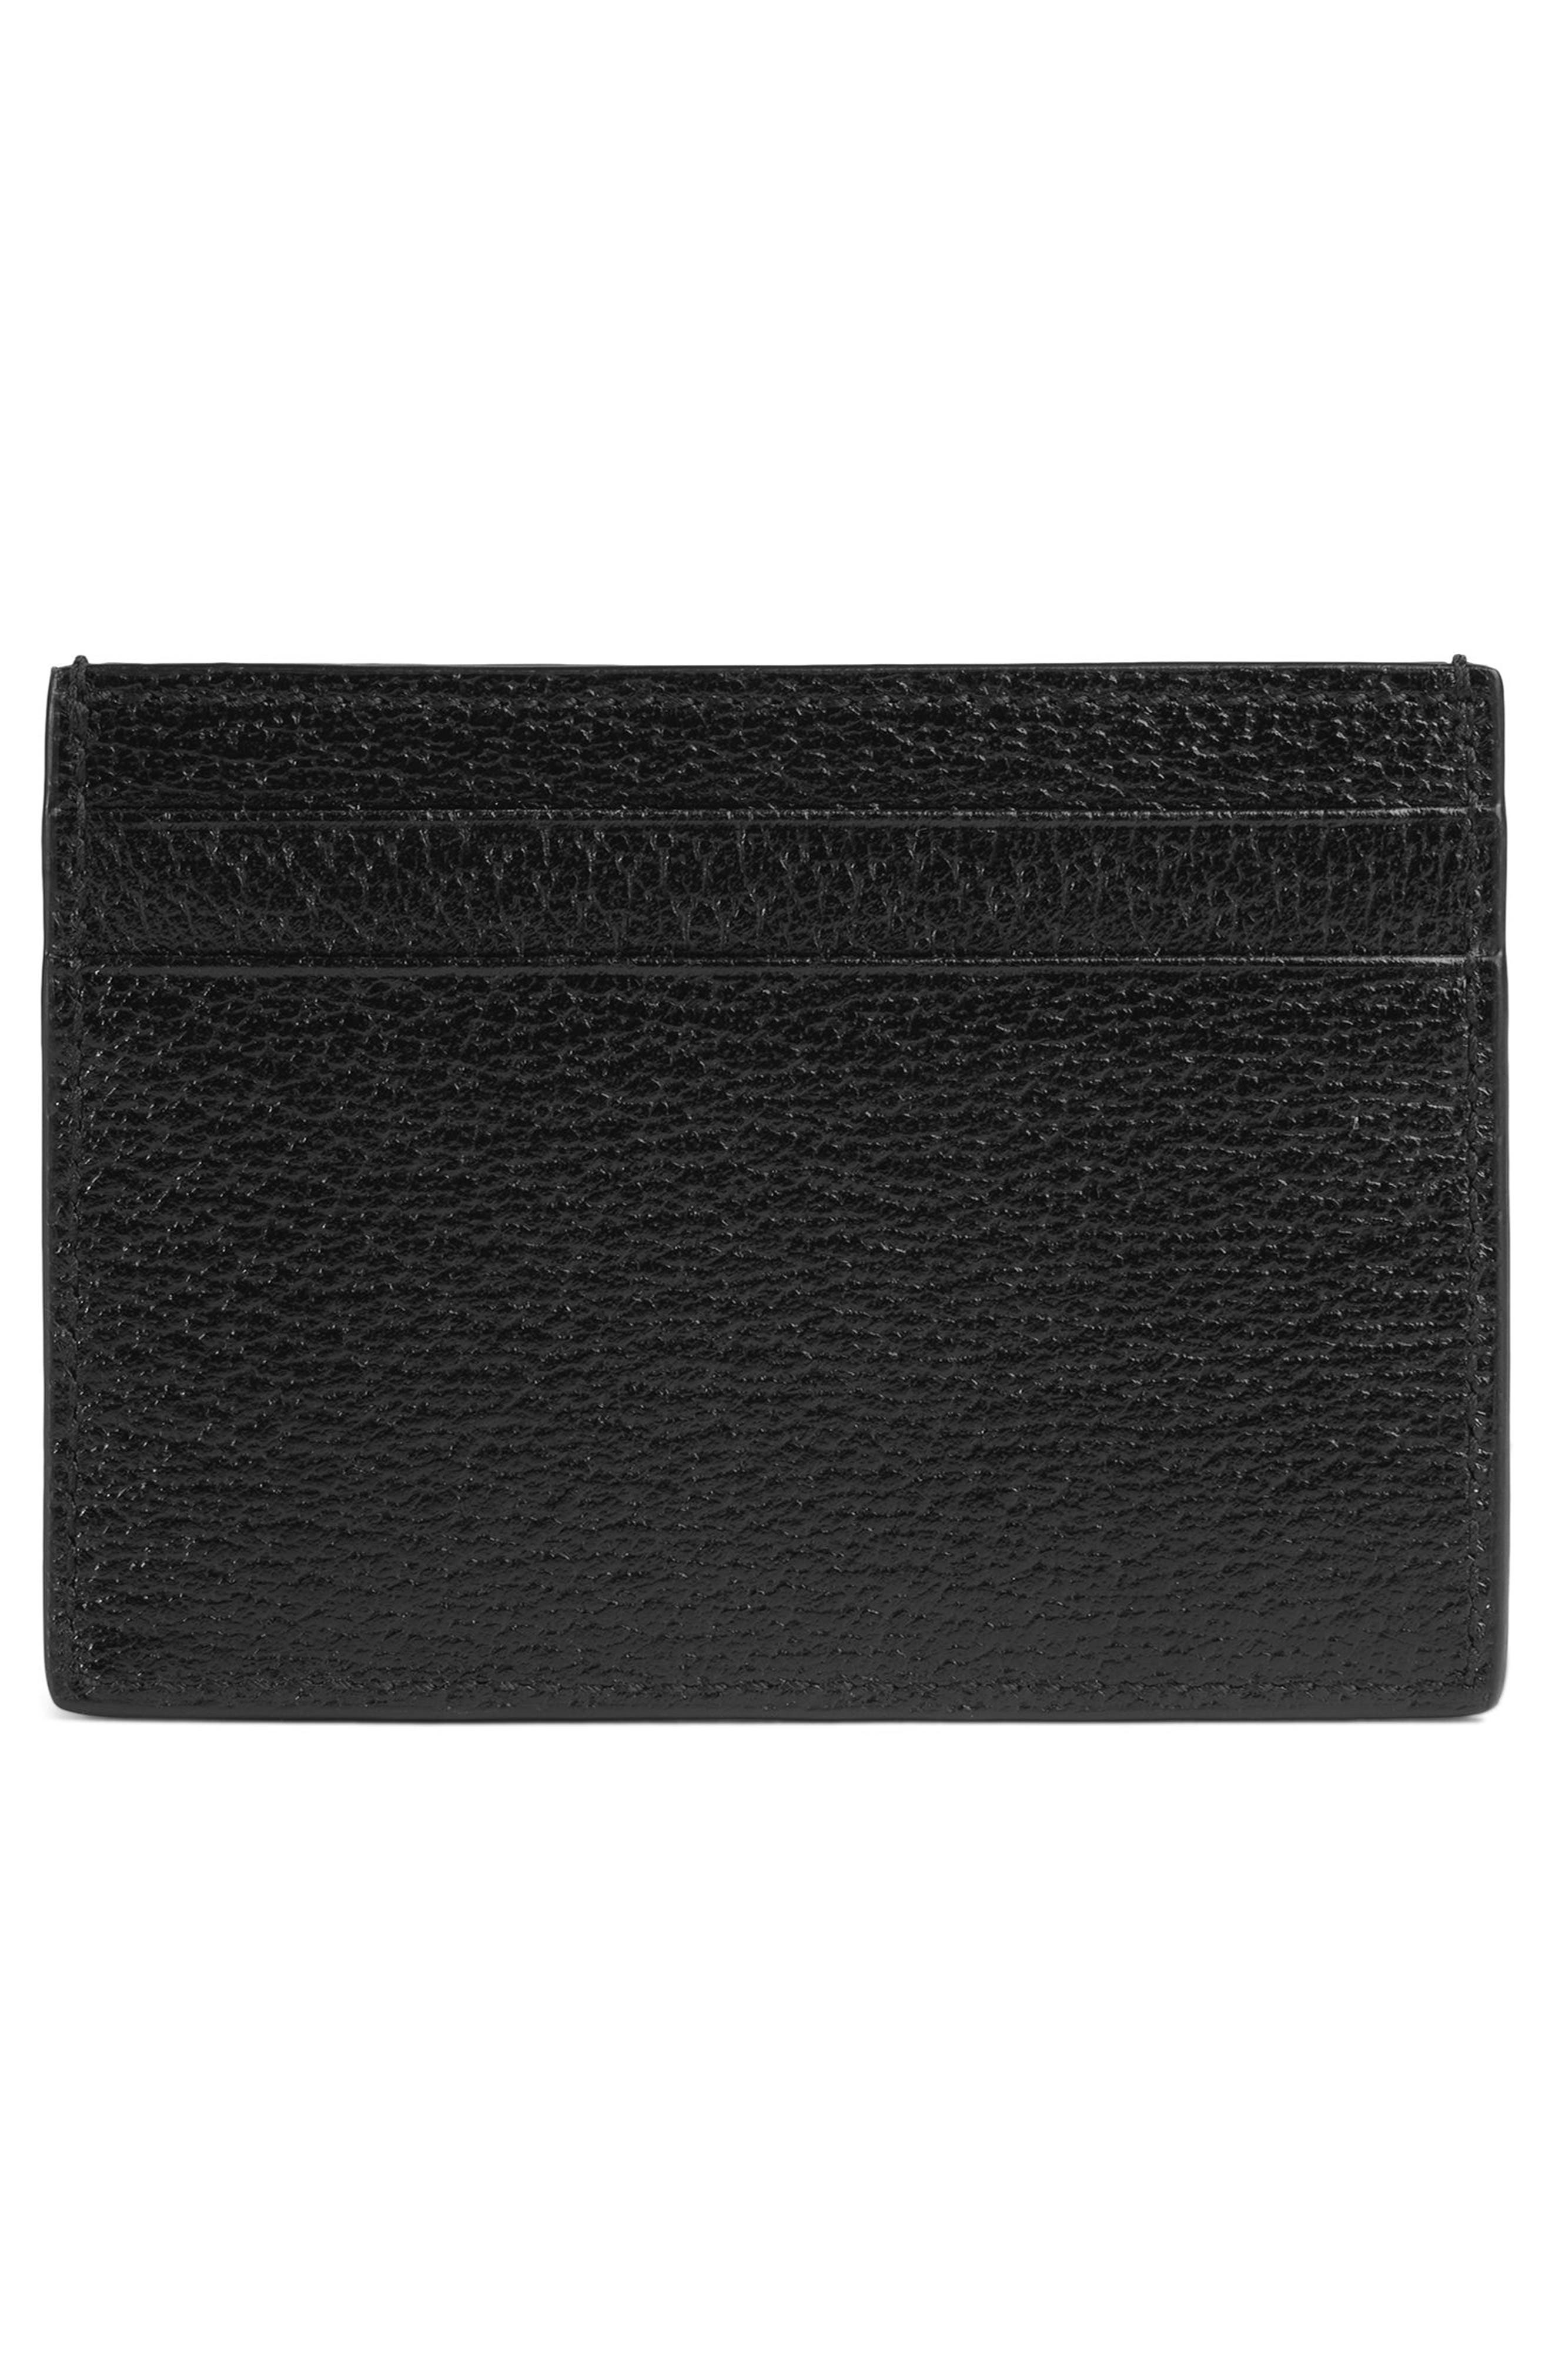 Bee Leather Card Case,                             Alternate thumbnail 3, color,                             Black